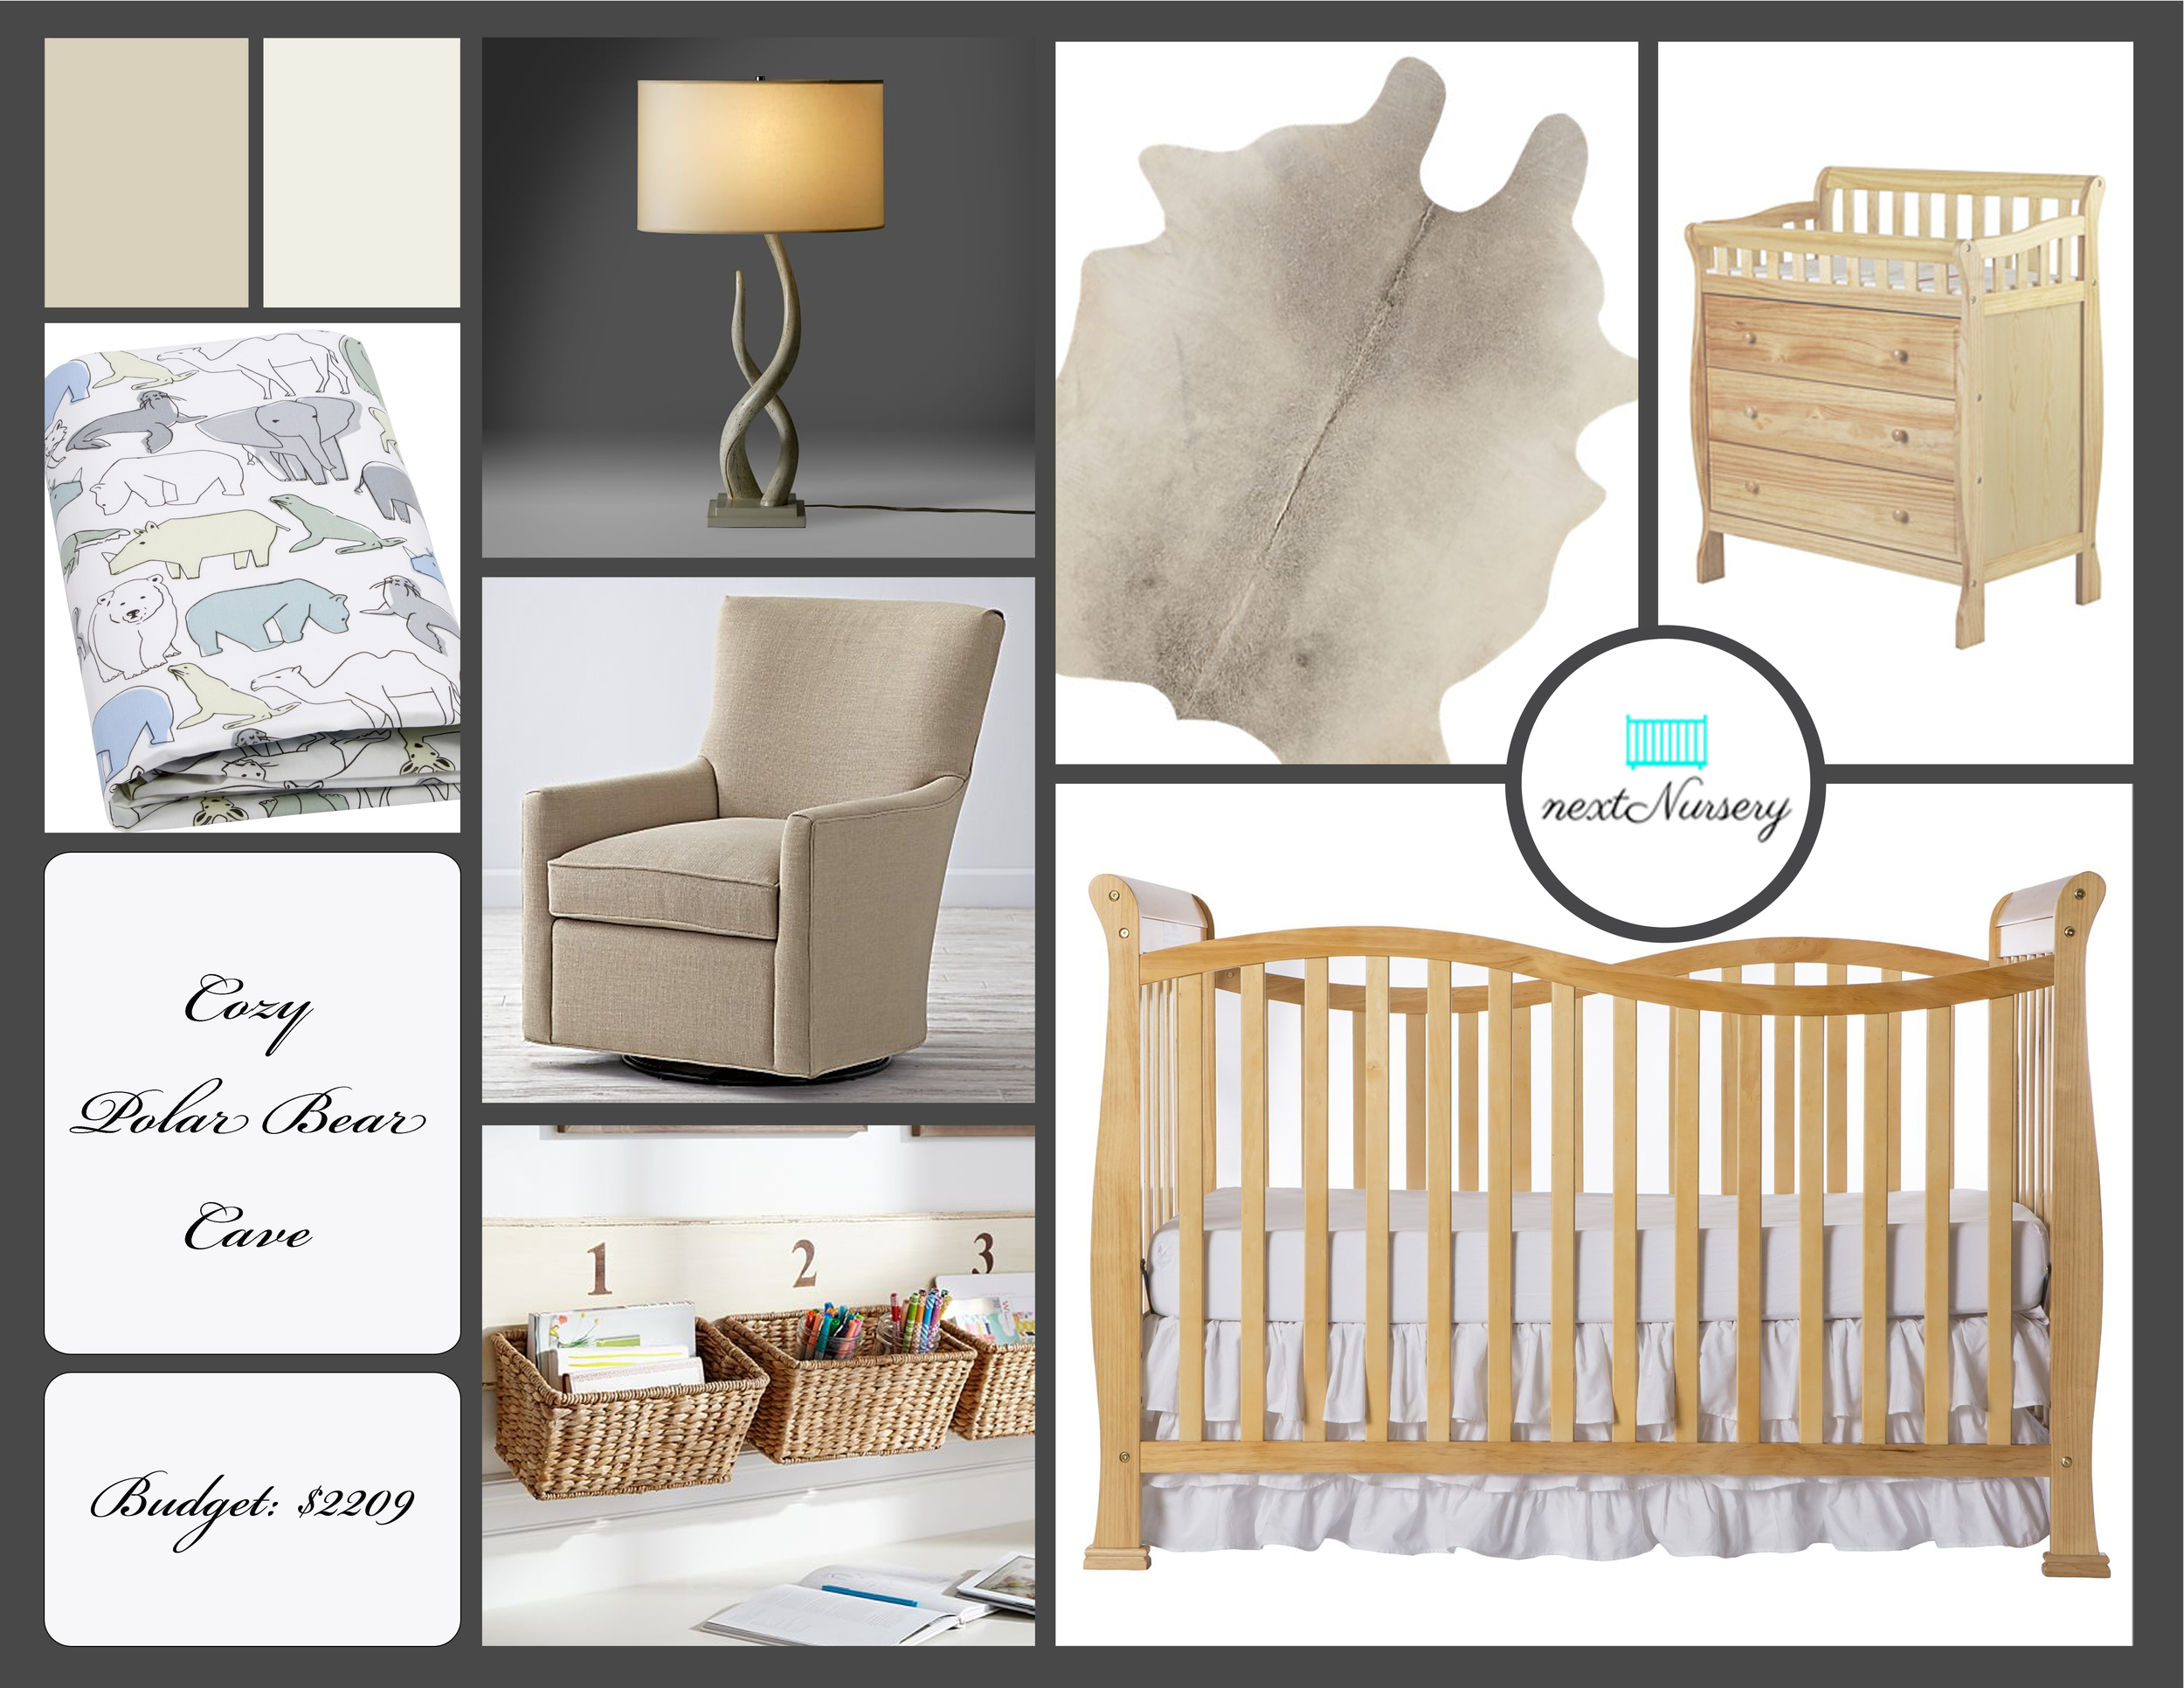 COZY POLAR BEAR NURSERY      This room has a neutral, cozy feel with natural wood colors that will help your baby relax in your arms every day.